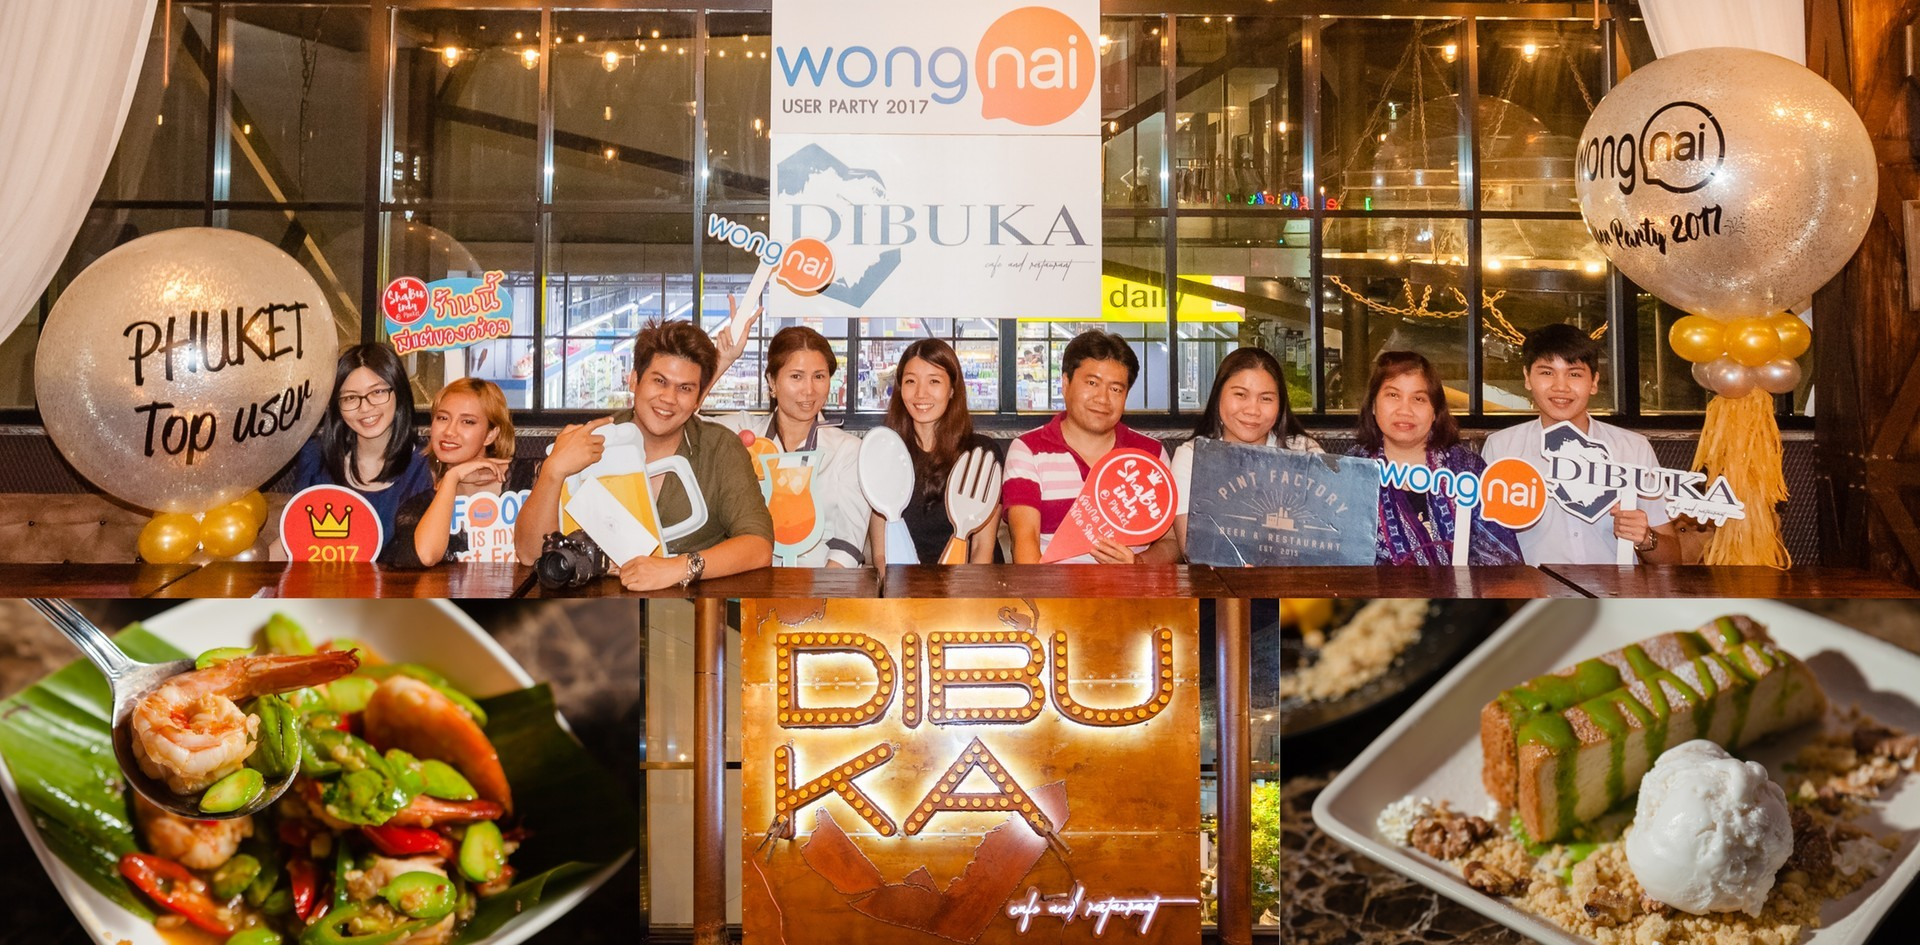 Wongnai Phuket Top User Party ครั้งที่ 4 @DIBUKA